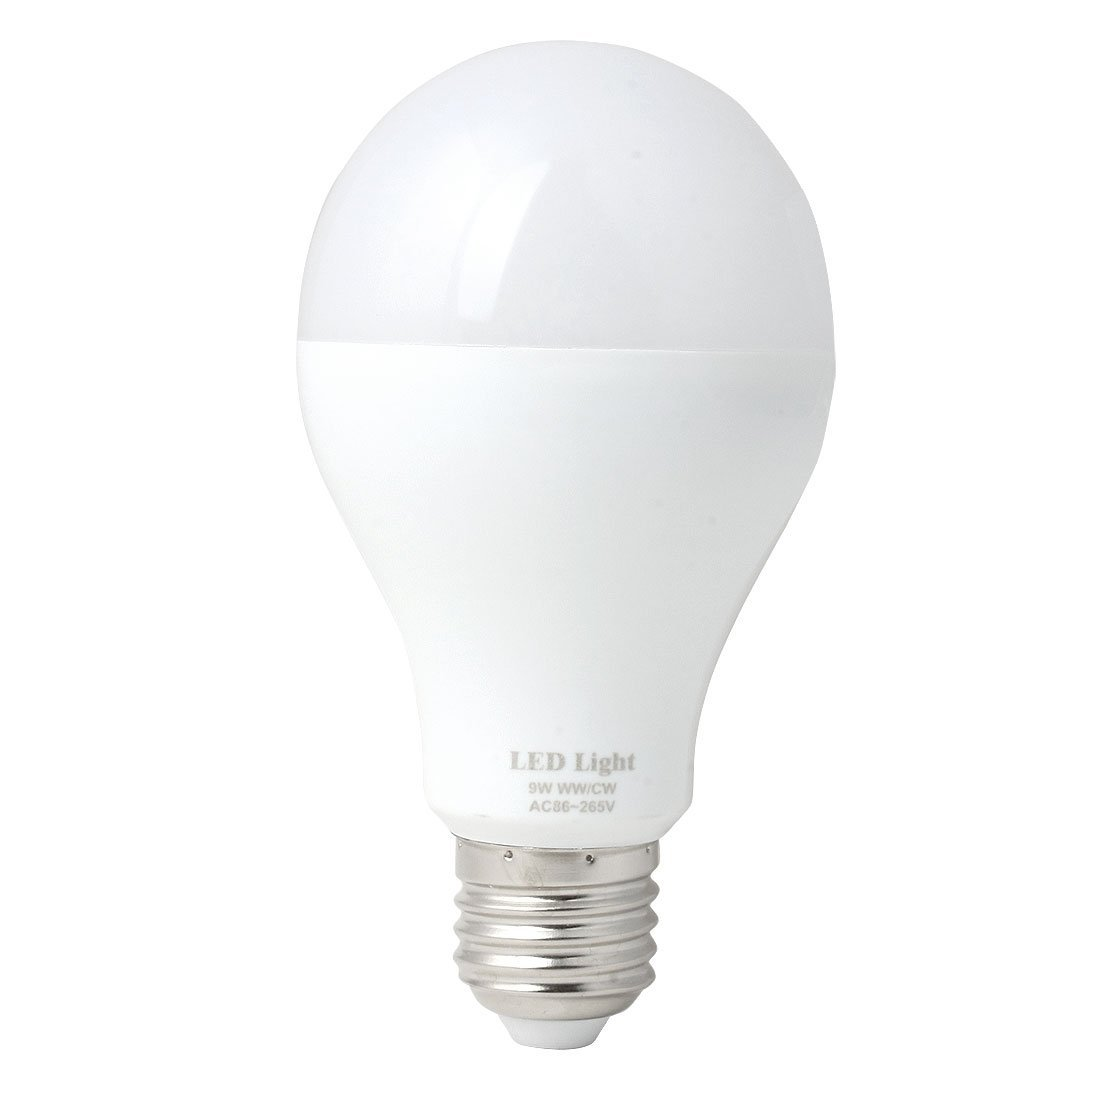 Cheap Led Bulb Remote Find Deals On Line At Alibabacom Non Dimmable Lighting Controller Get Quotations Uxcell Ac85 265v 9w E27 5630 Light 2700 6500k Adjust Color Temperature